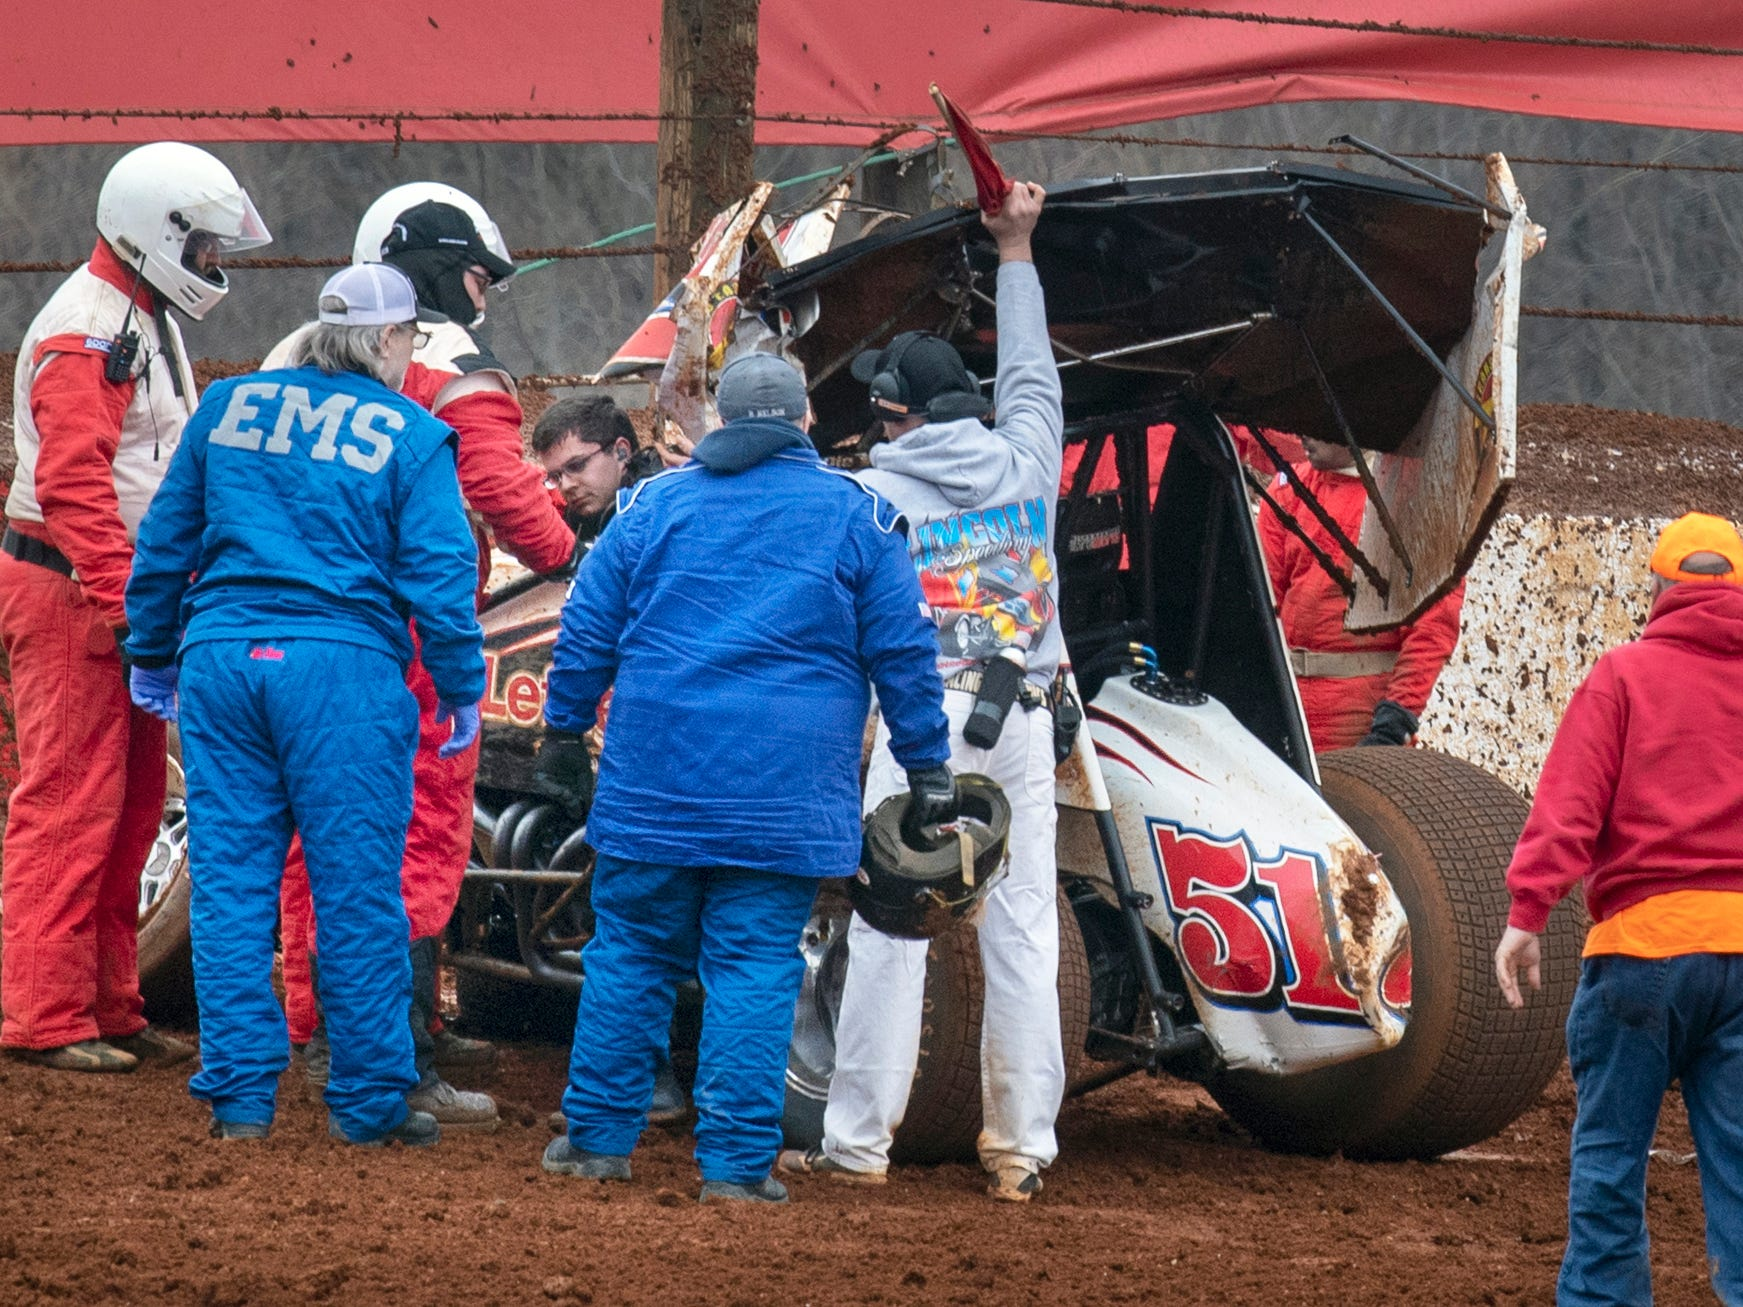 Freddie Rahmer emerges from the 51 car after a crash in the fourth turn of the 16th lap during the 2019 Lincoln Speedway Ice Breaker 30.